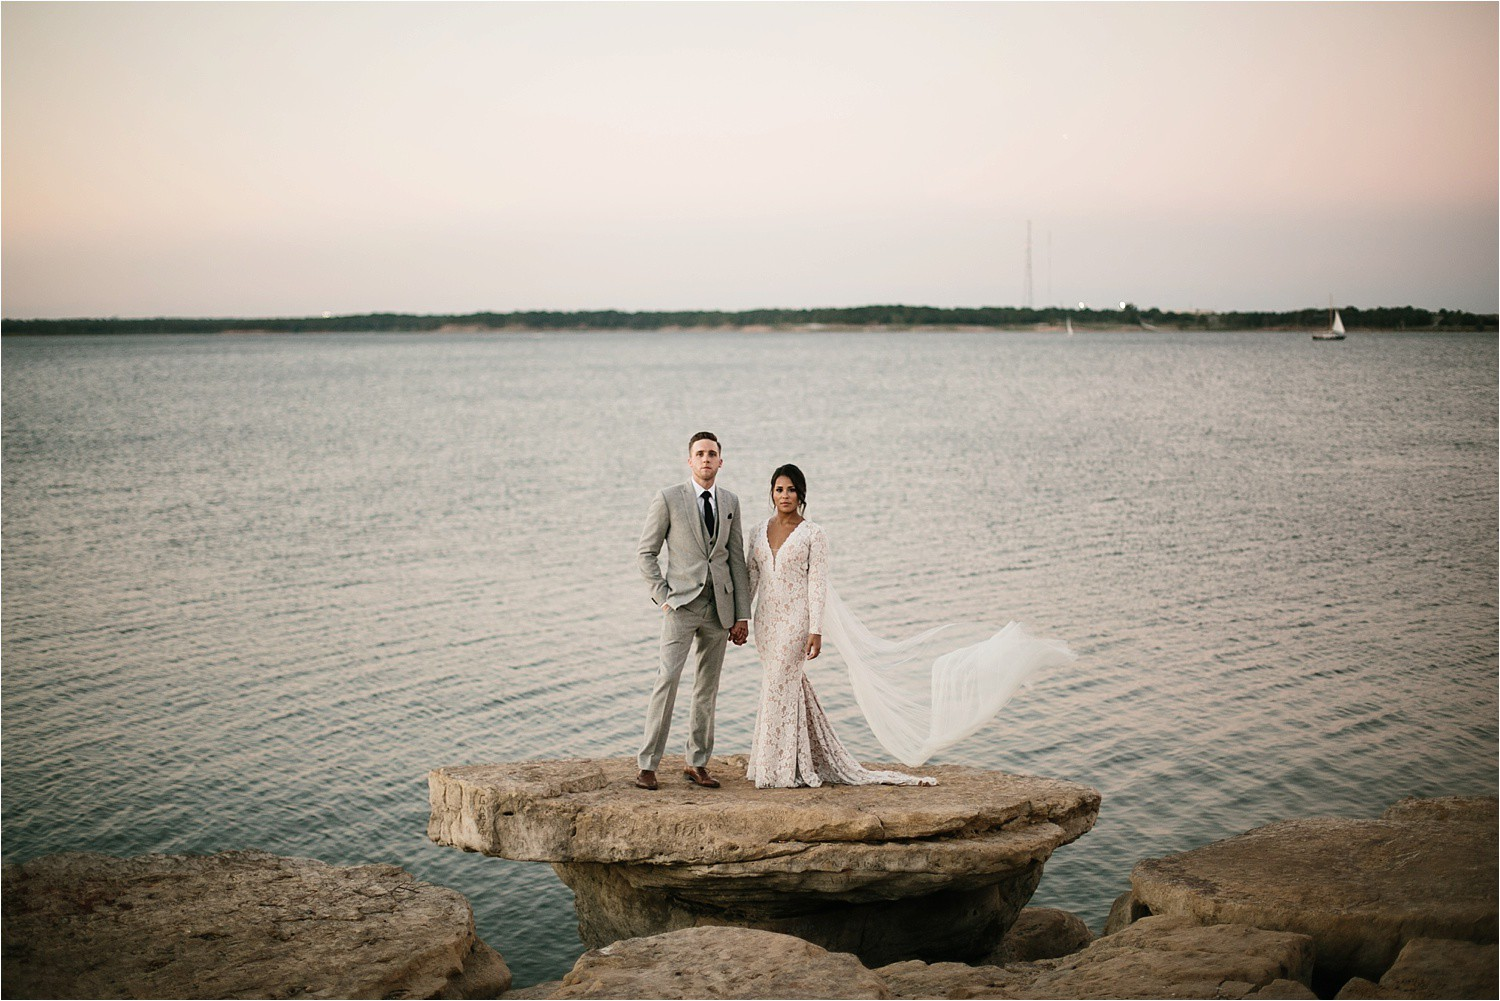 mallory-tyler-__-an-intimate-after-session-at-grapevine-lake-by-north-texas-wedding-photographer-rachel-meagan-photography-_-50